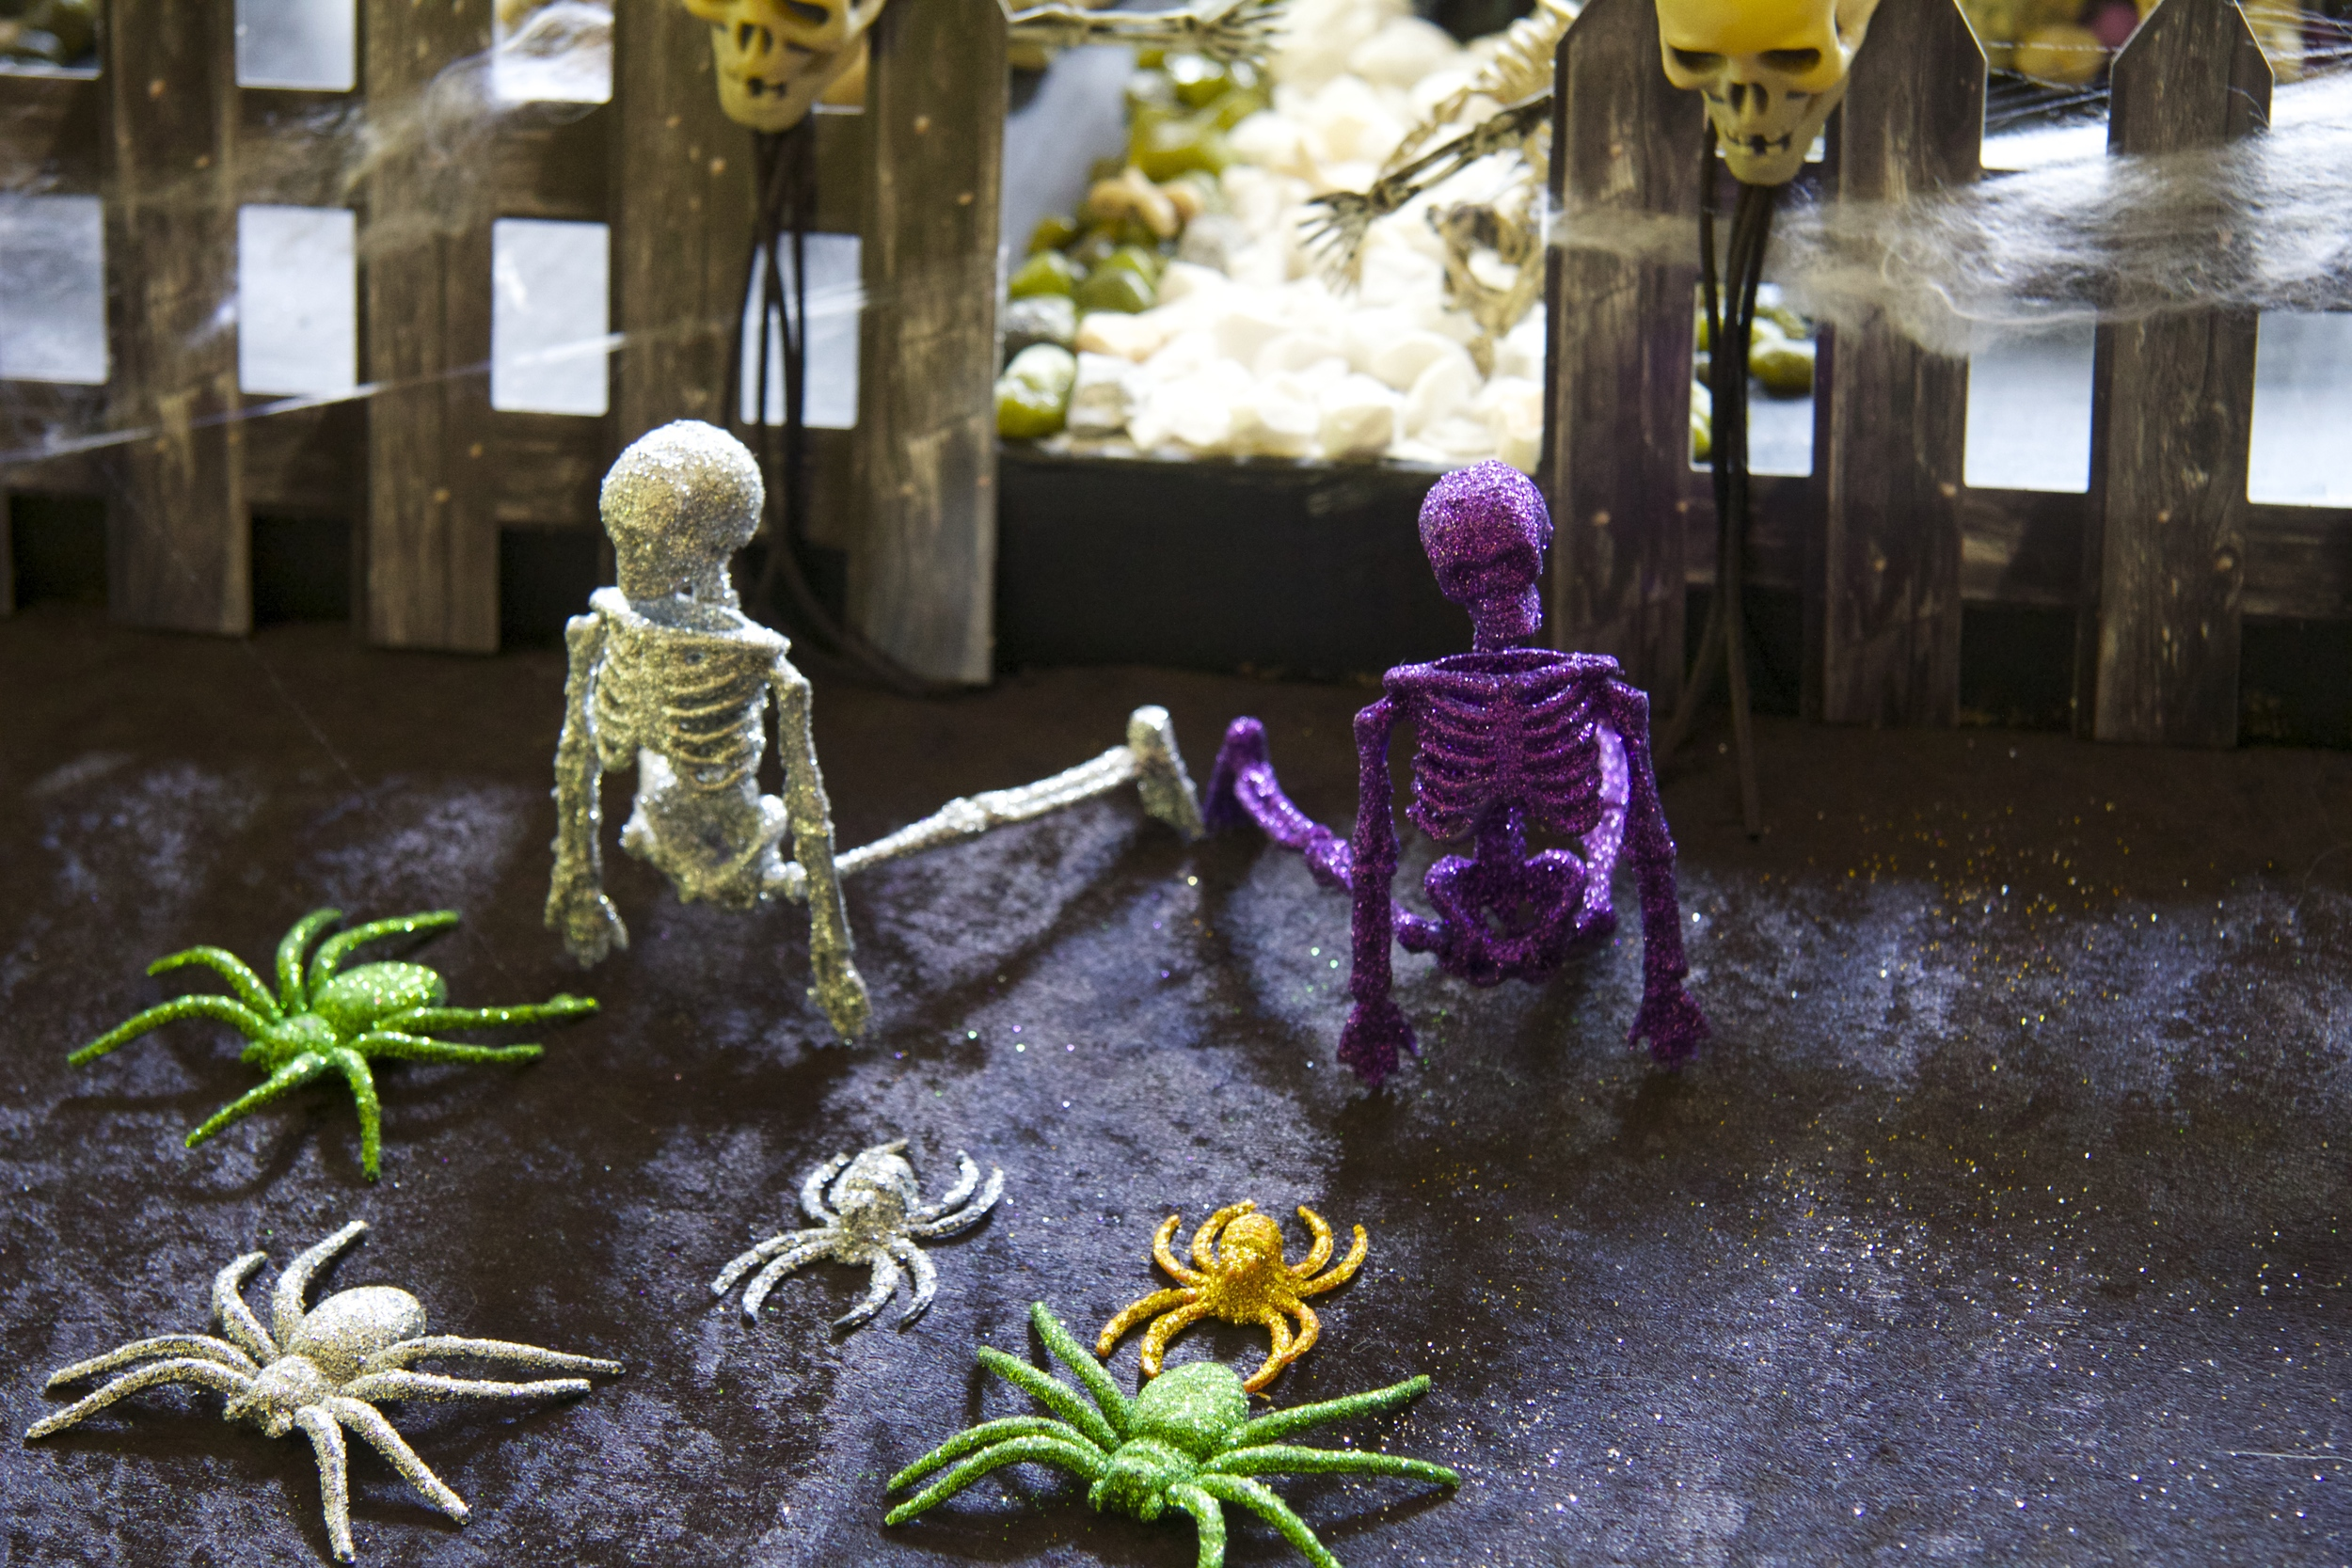 Halloween Graveyard - The Skeletons are escaping